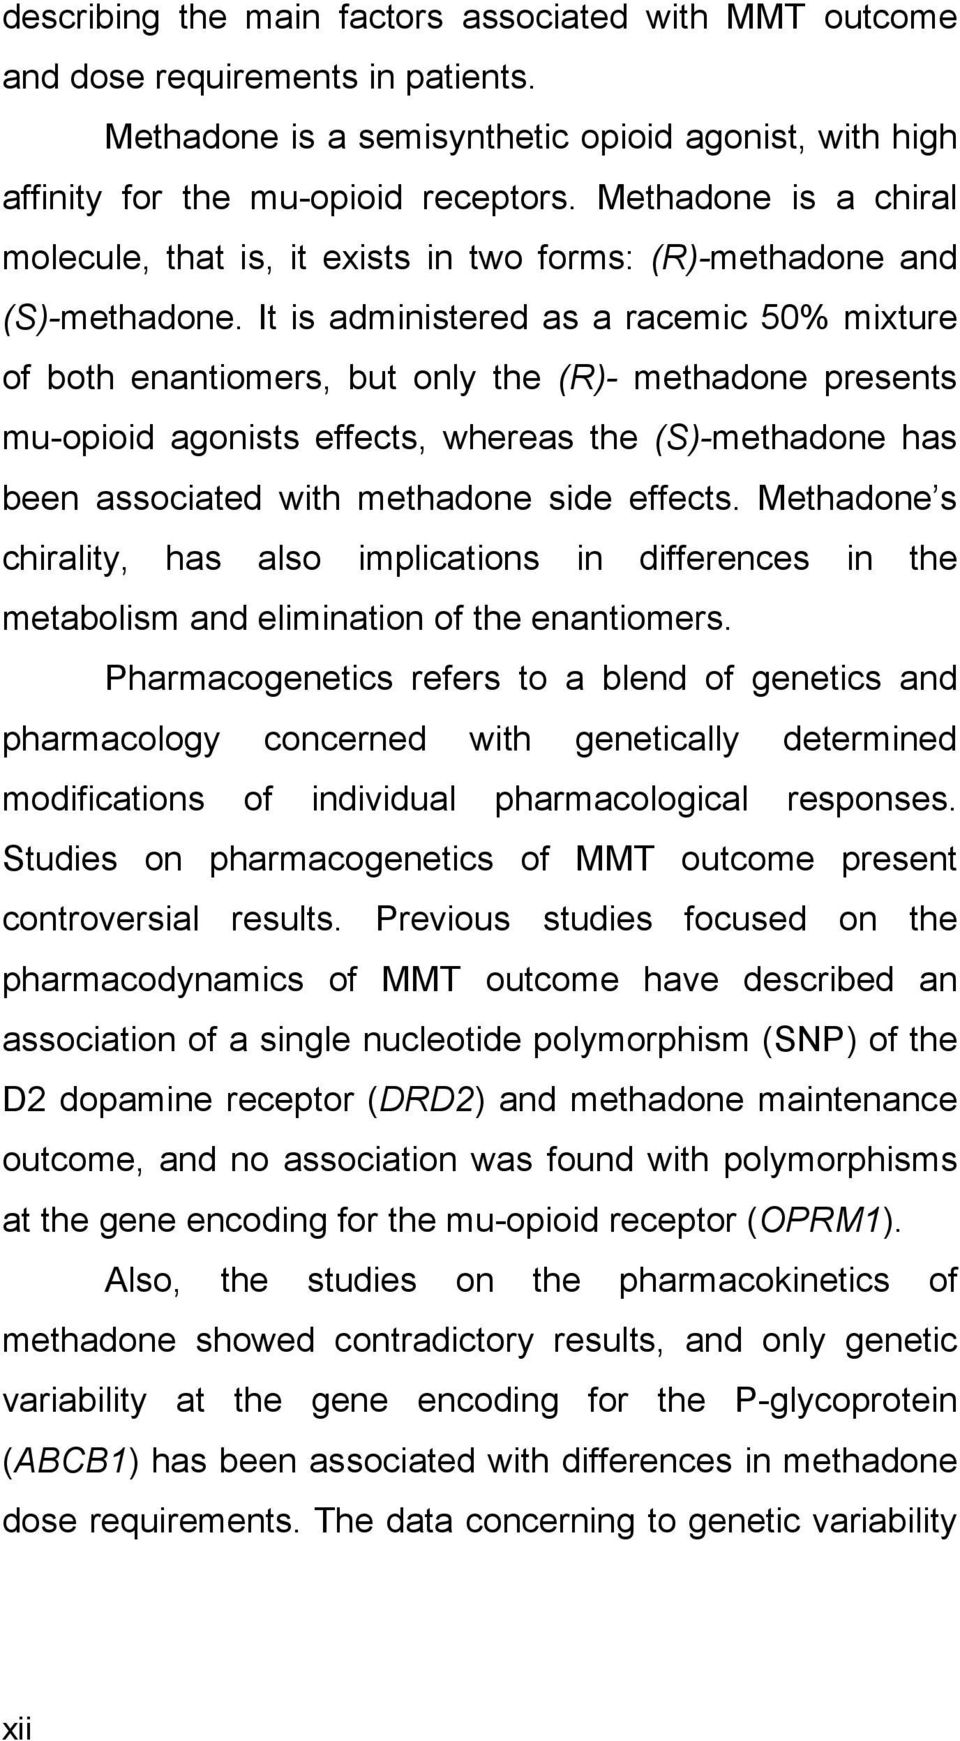 It is administered as a racemic 50% mixture of both enantiomers, but only the (R)- methadone presents mu-opioid agonists effects, whereas the (S)-methadone has been associated with methadone side